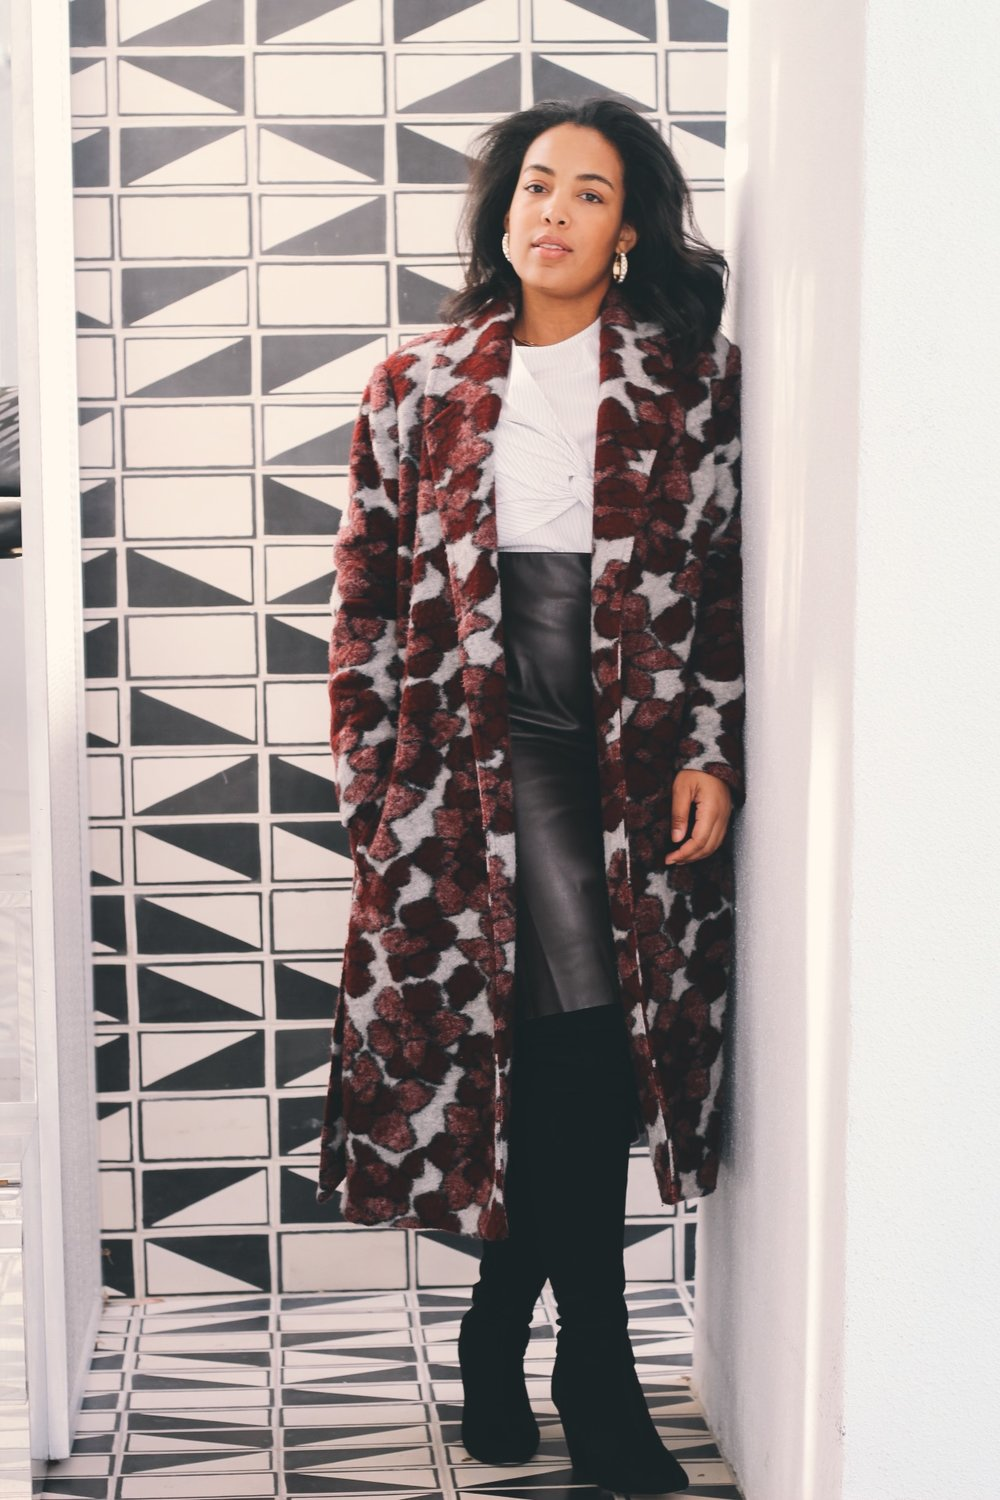 Durham-Hotel-Robinson-Style-rent-the-runway-hutch-floral-coat-milly-stripe-top-loft-leather-pencil-skirt-asos-over-the-knee-boot.JPG-5.JPG